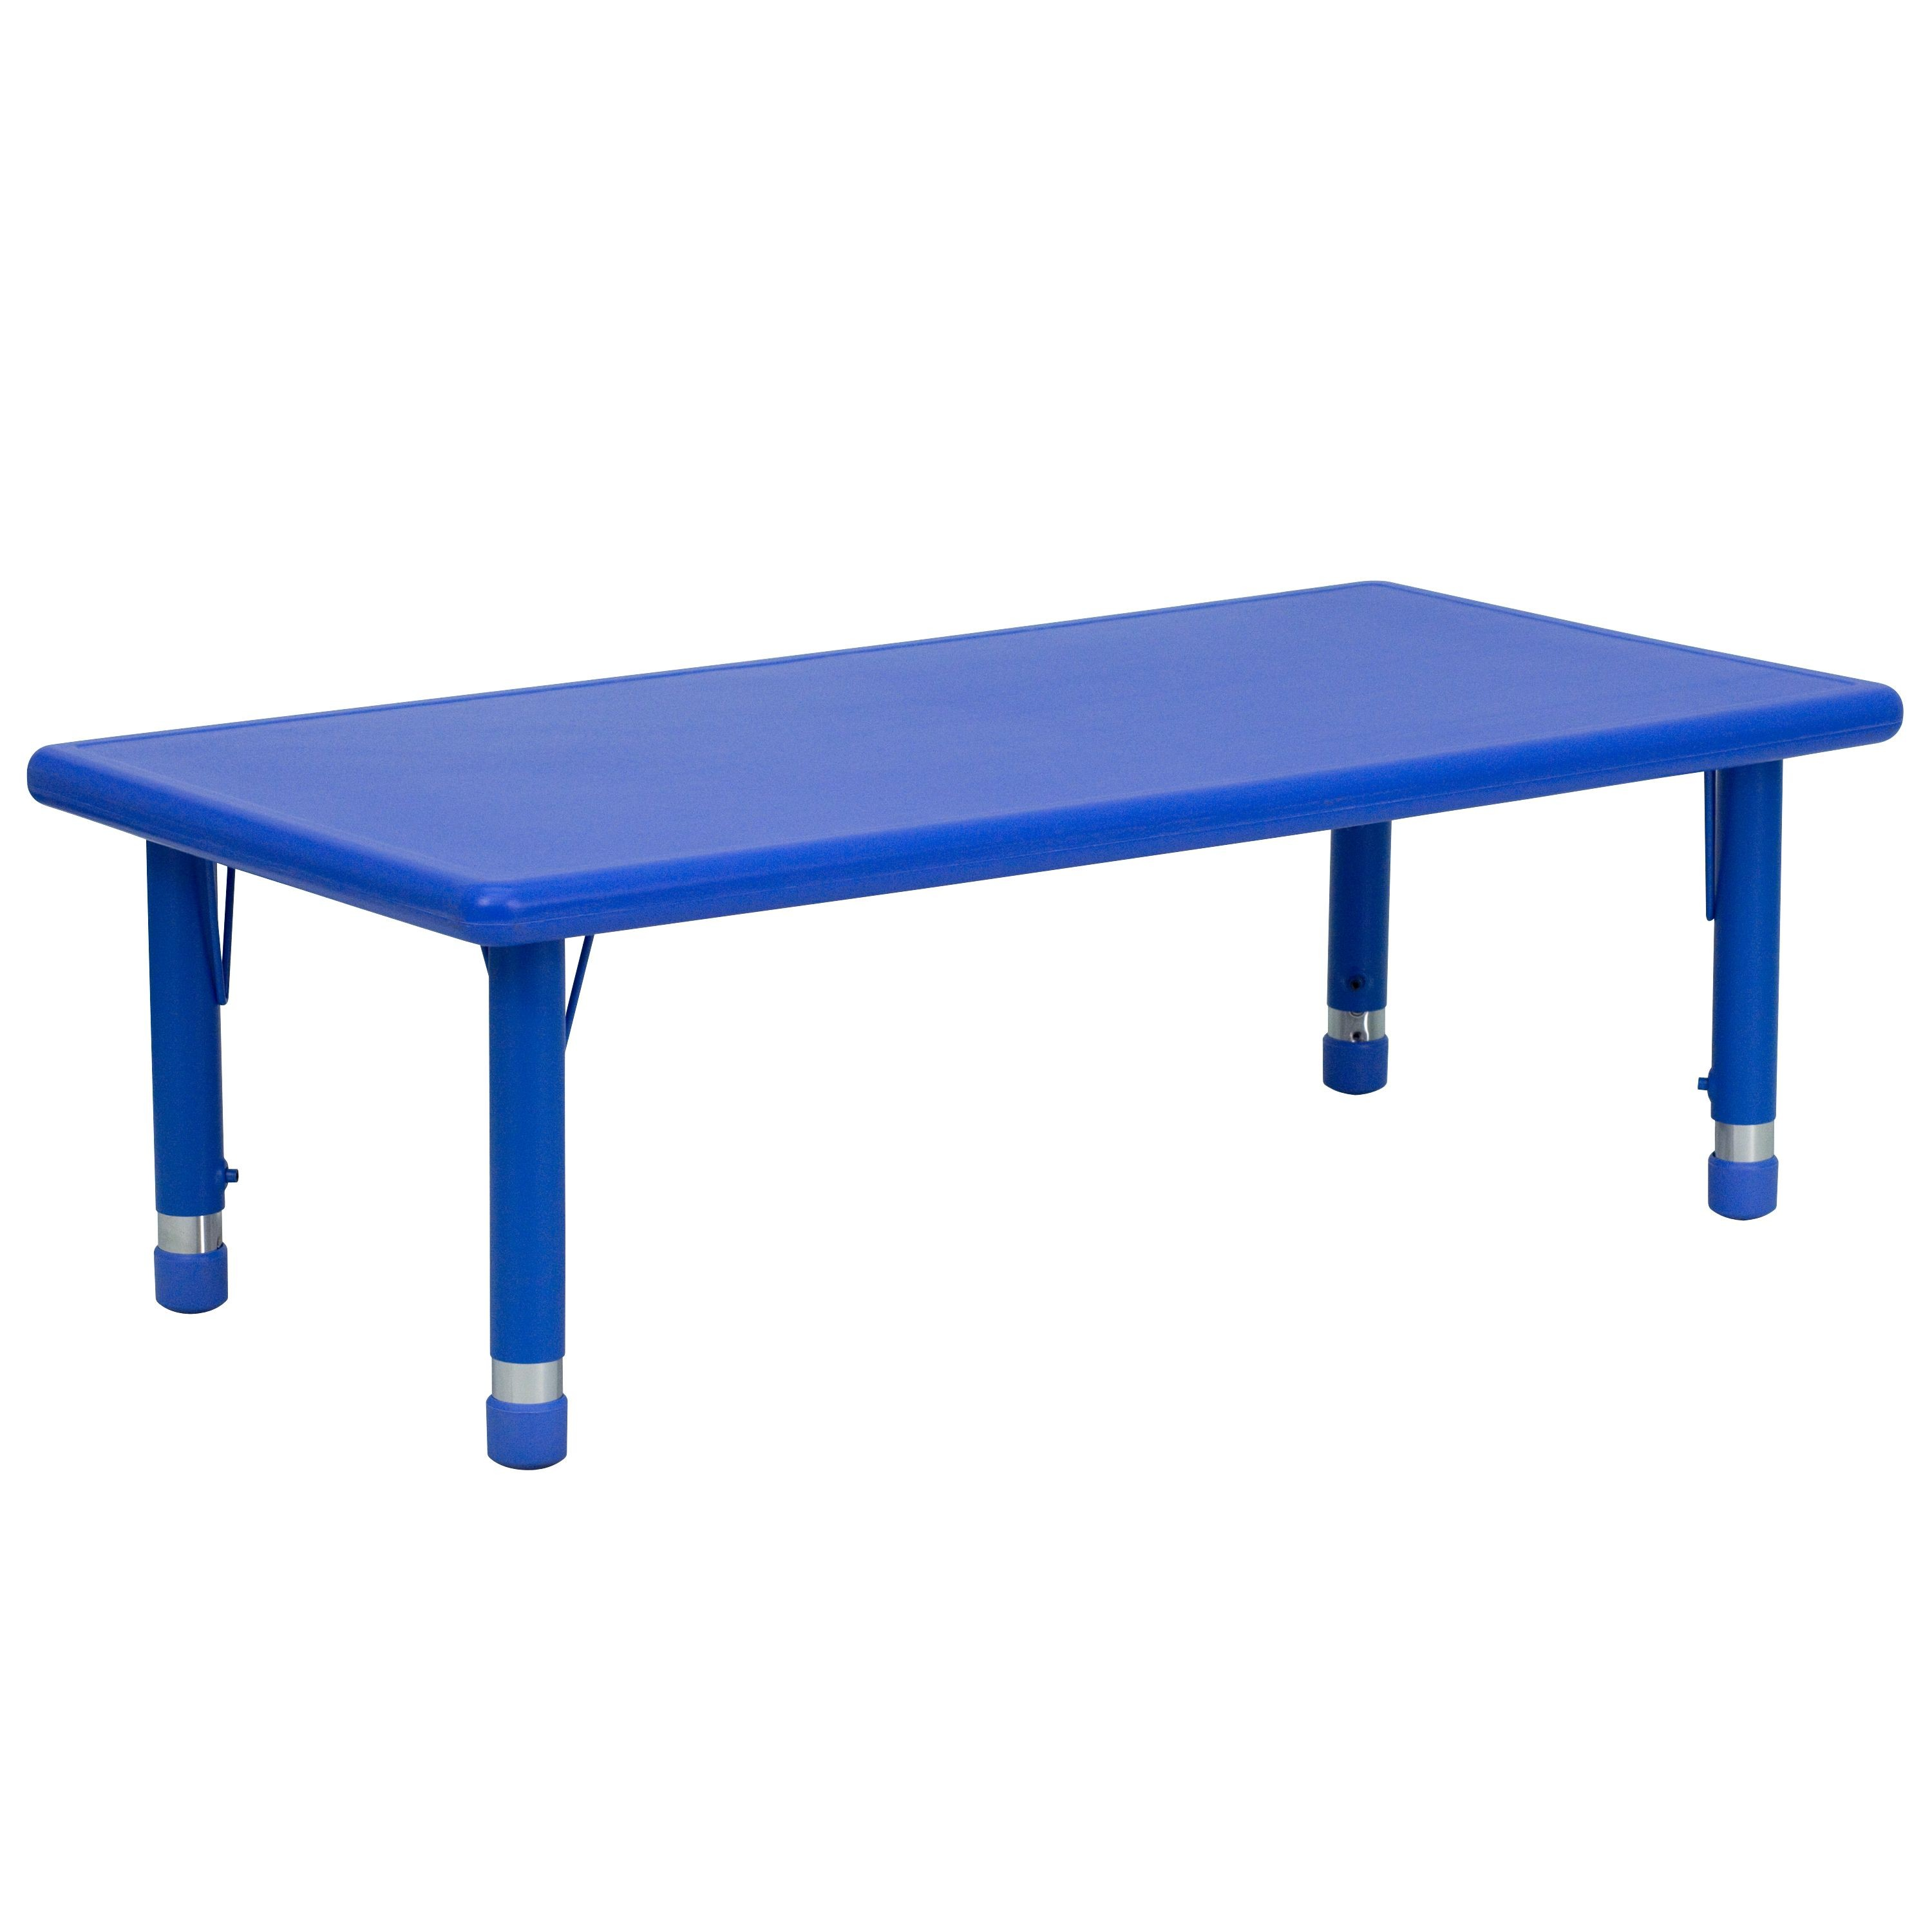 Flash Furniture YU-YCX-001-2-RECT-TBL-BLUE-GG 24''W x 48''L Height Adjustable Rectangular Blue Plastic Activity Table